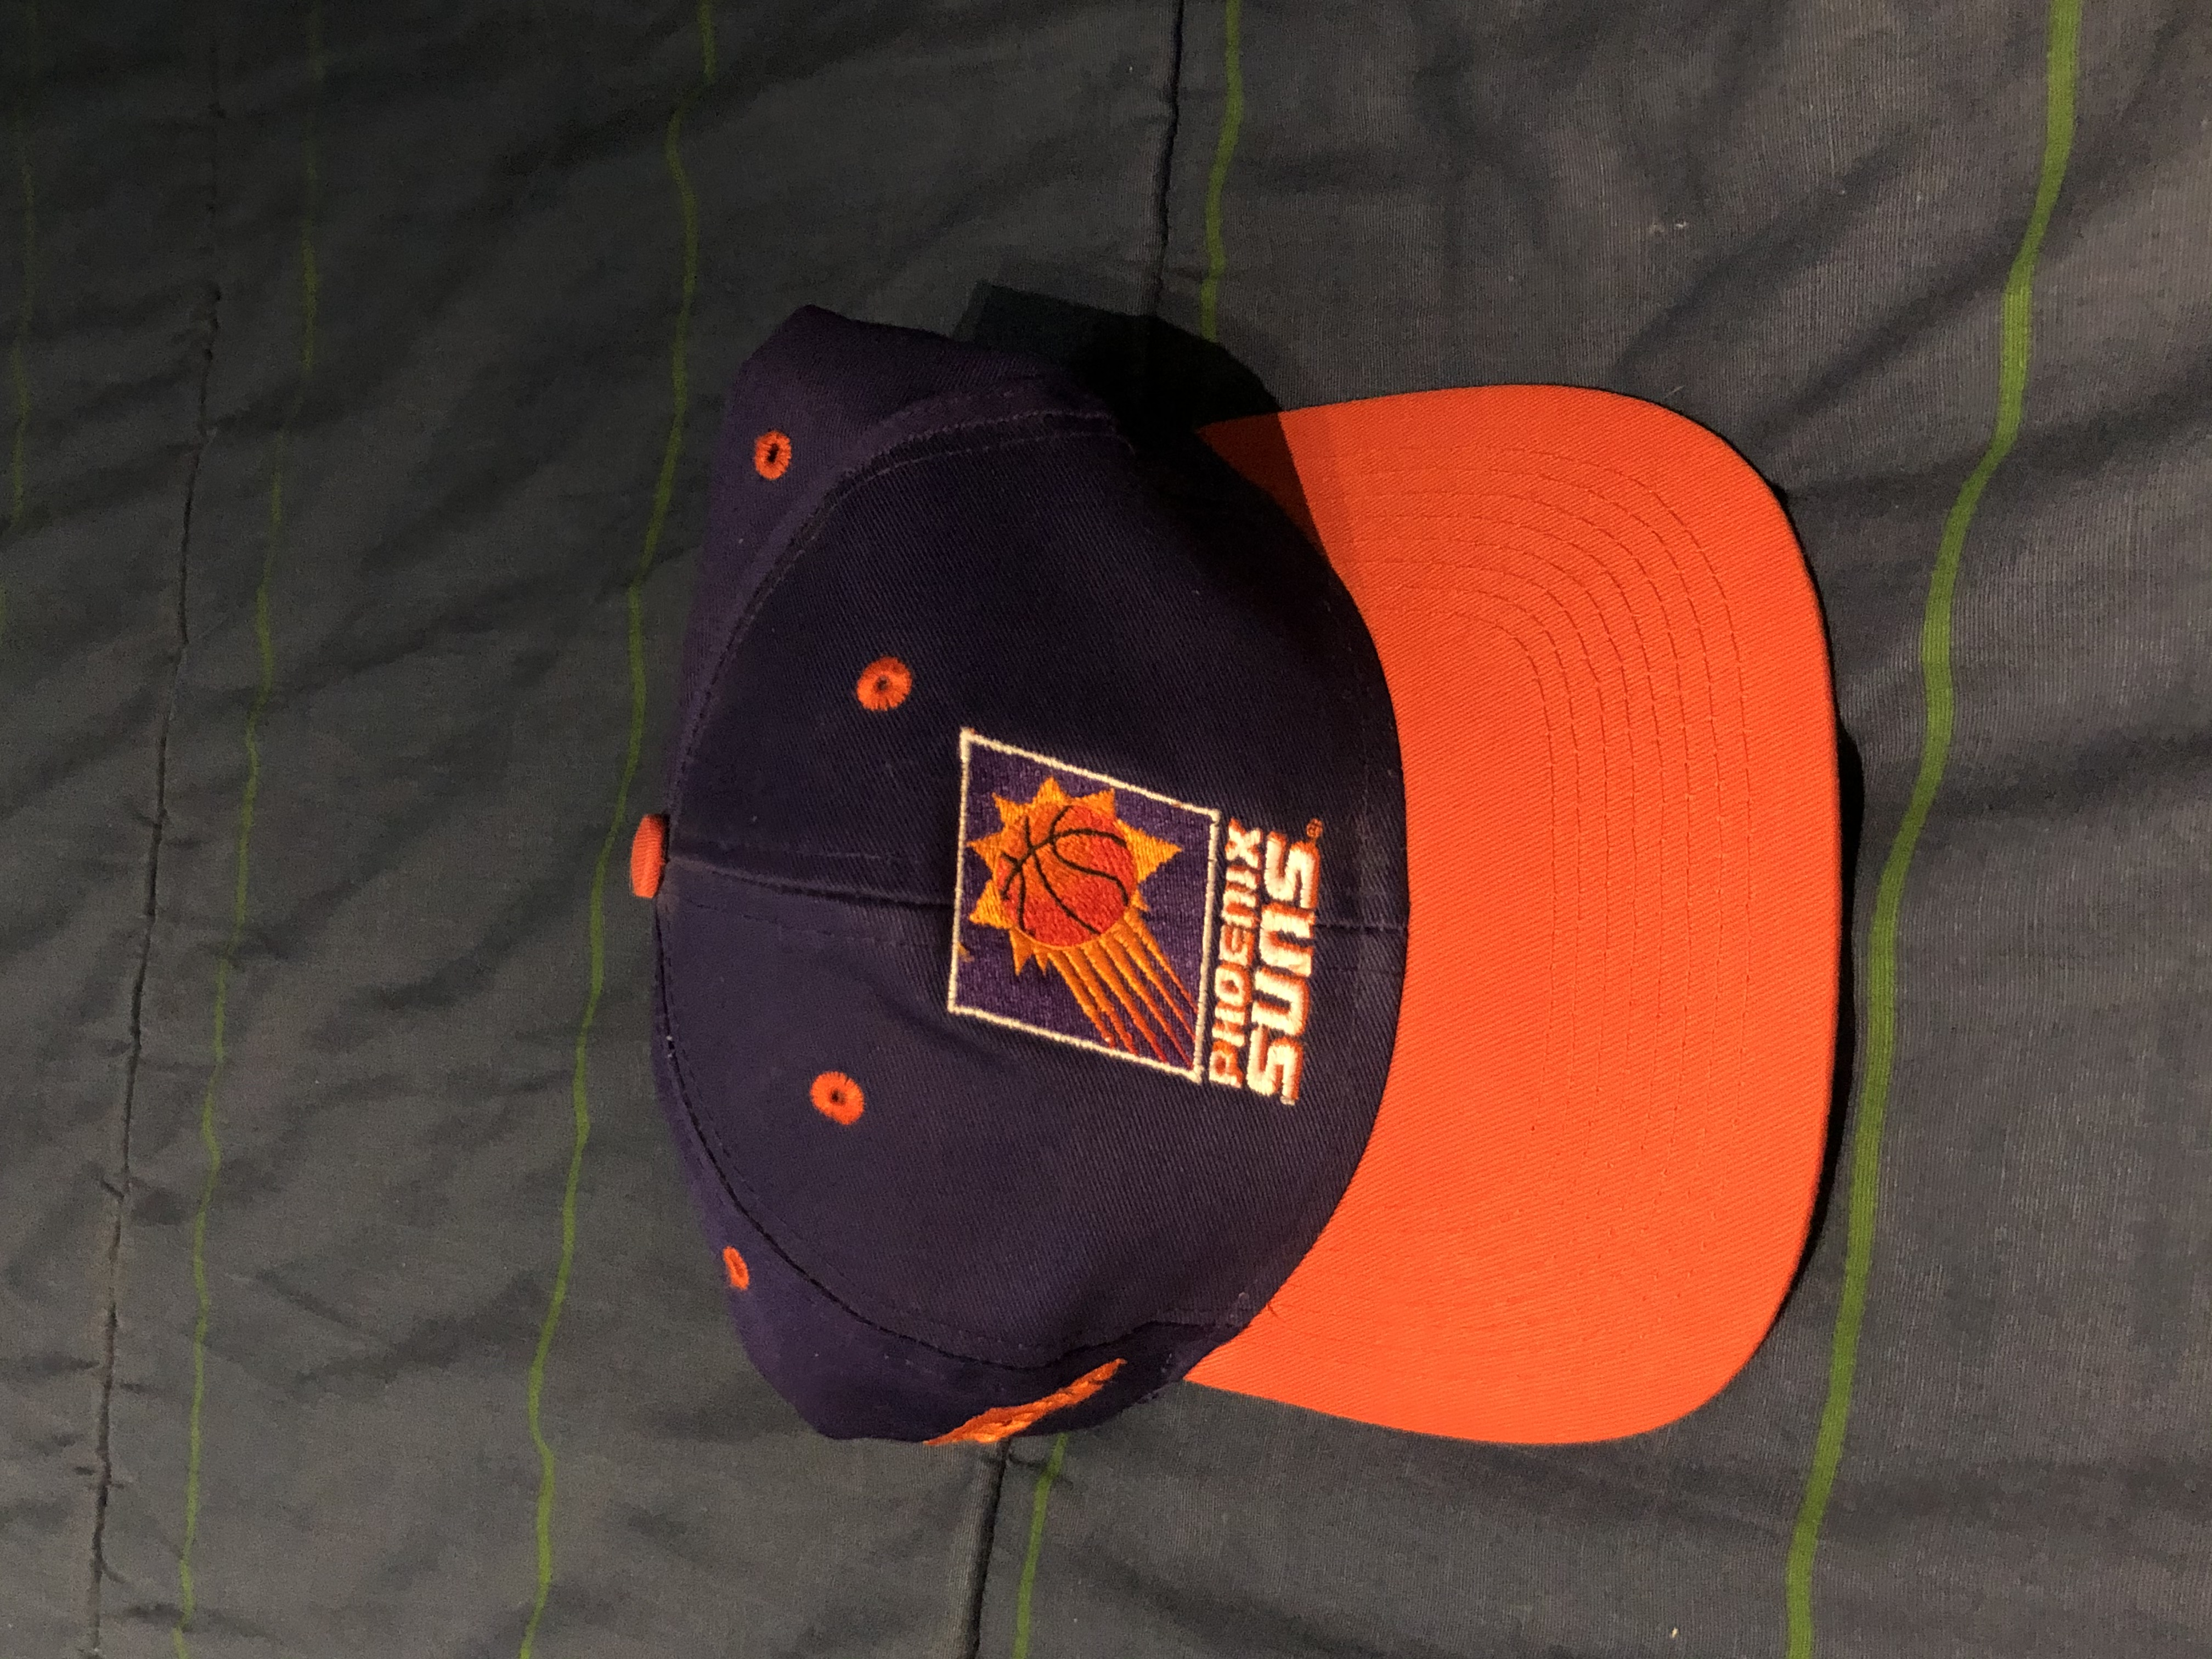 Nba Phoenix Suns Hat Grailed